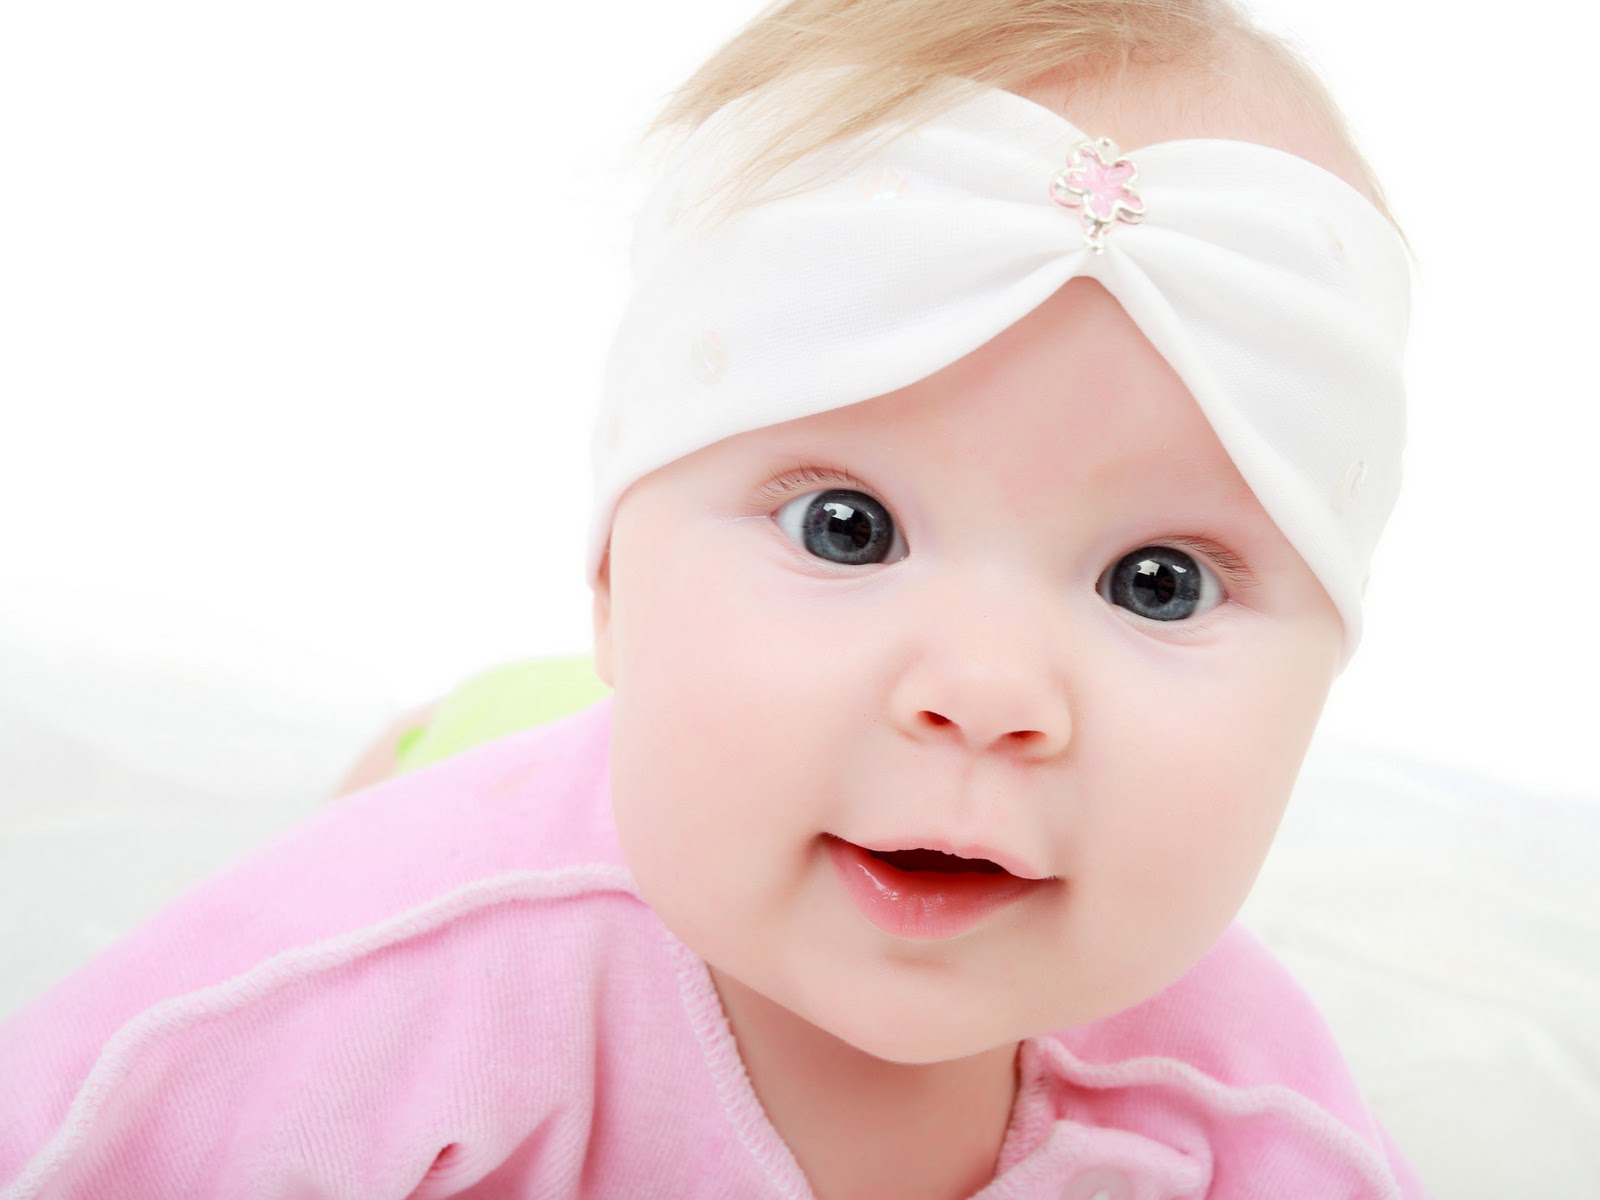 Printed headband, which will make your baby girl more cute and temperament. Baby Clothes, Egmy Cute Newborn Infant Baby Girl Boy Short Sleeve Letter Romper Jumpsuit Outfits Clothes (Size:6M) by Egmy. $ $ 3 99 + $ shipping. out of 5 stars See Details. Promotion Available See Details.